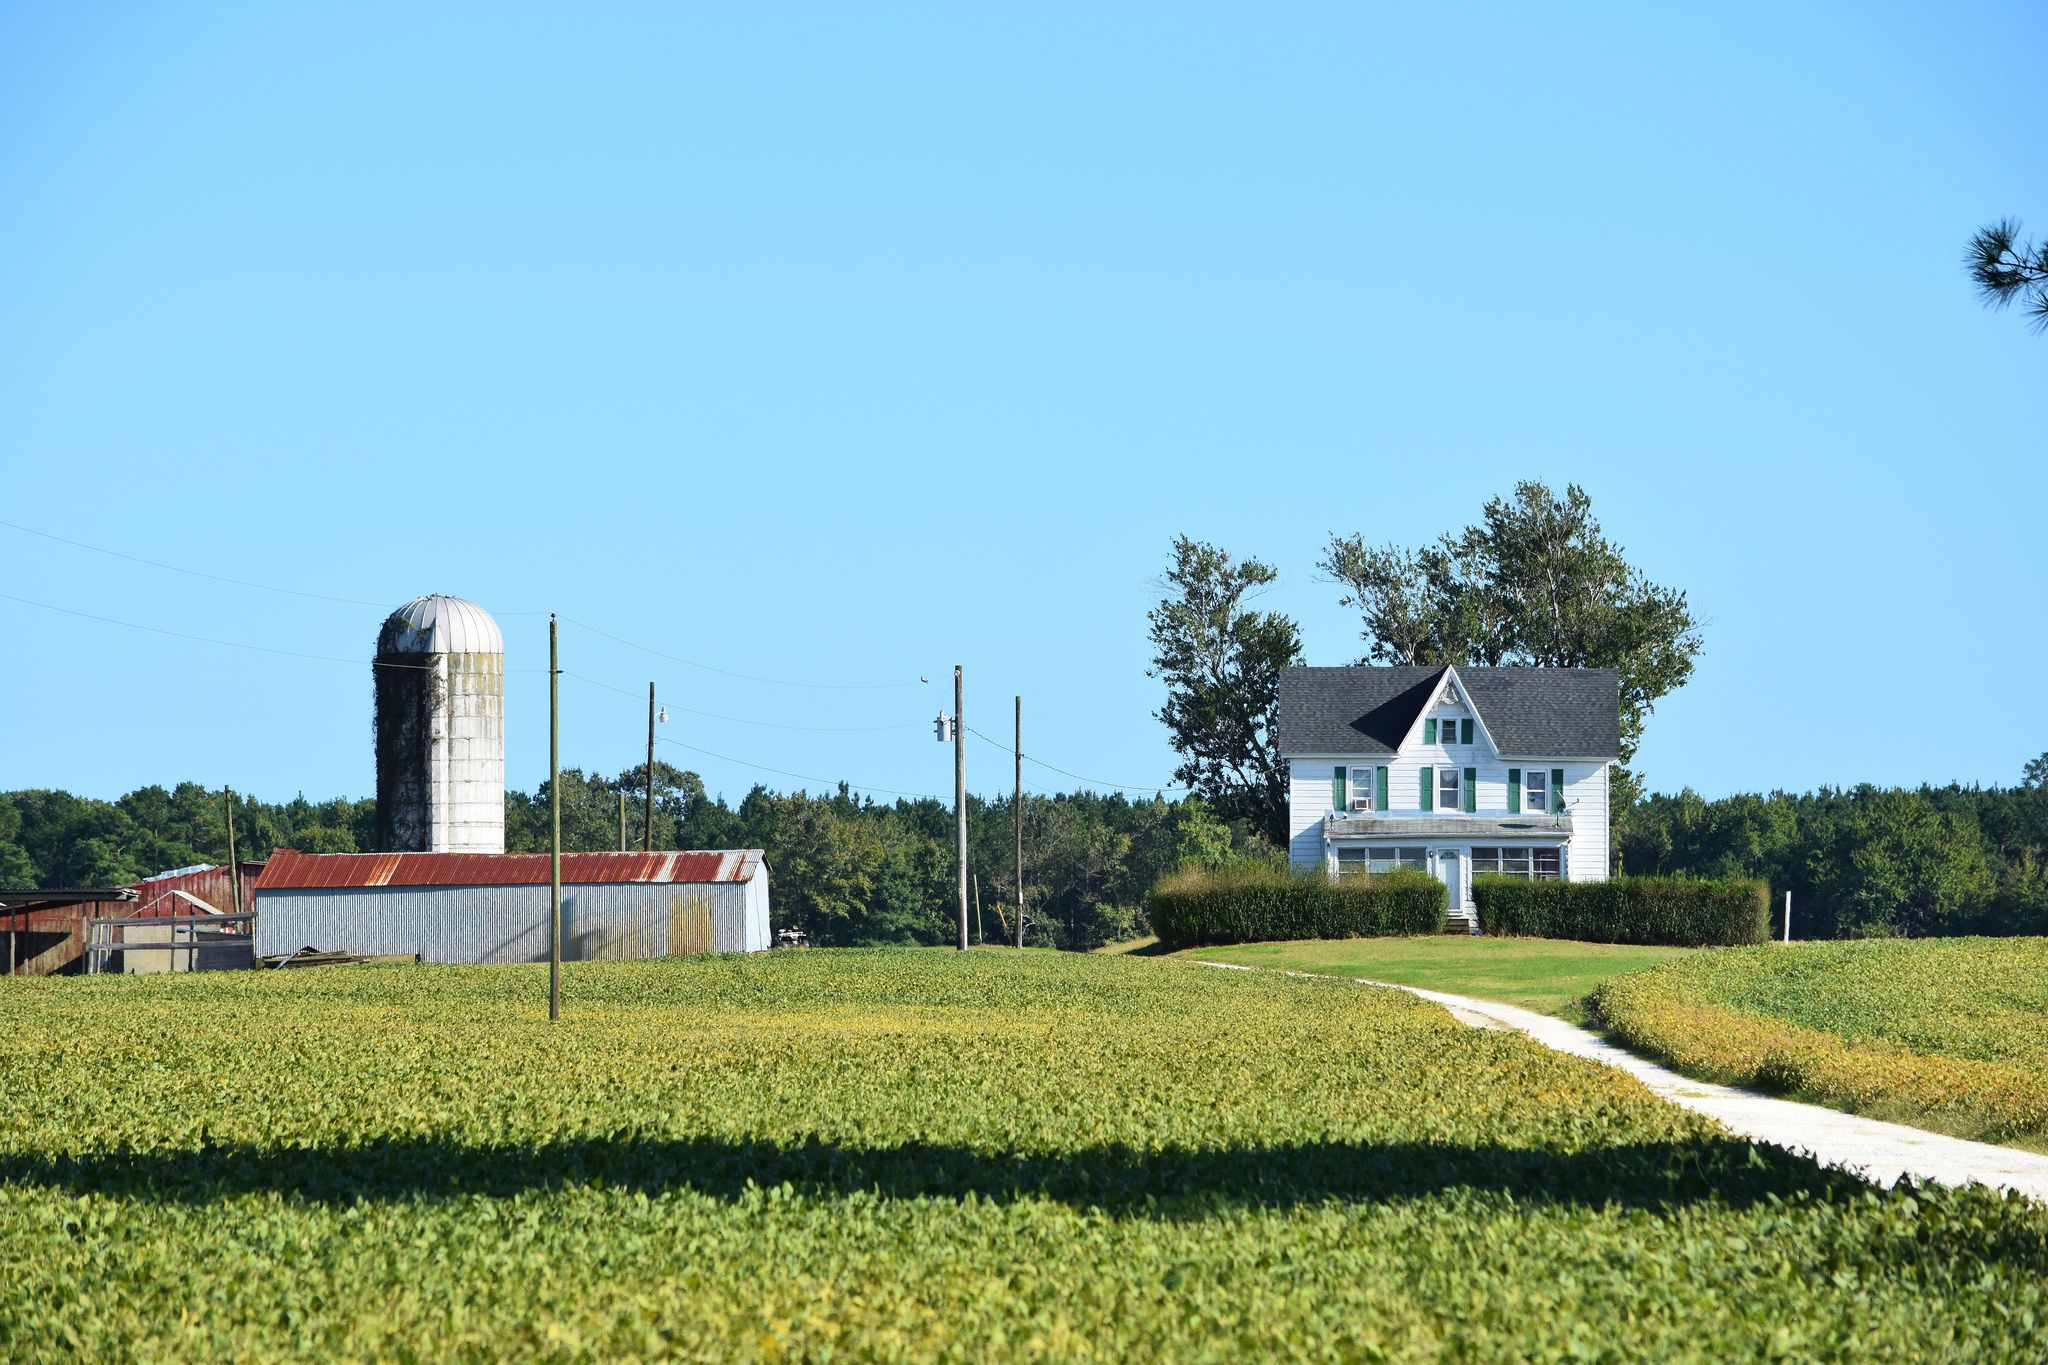 Farm rt 113 3 miles north of snow hill maryland